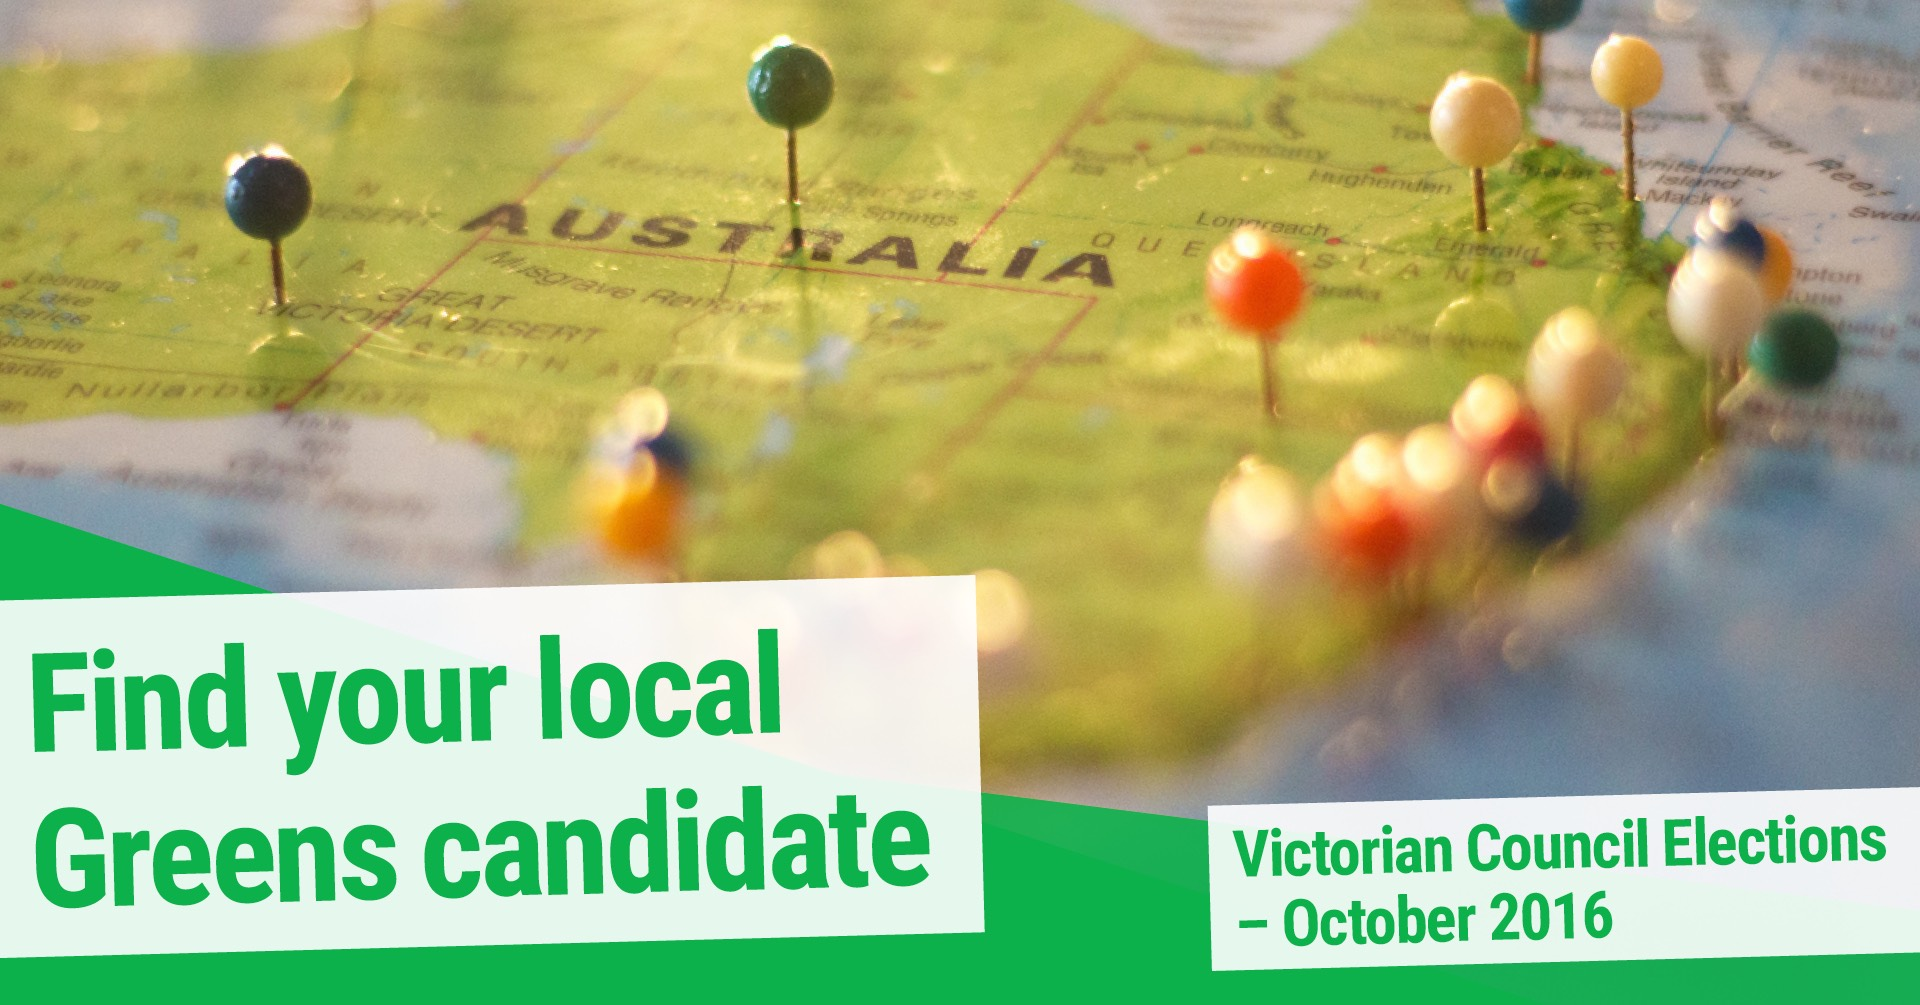 Find your local candidate